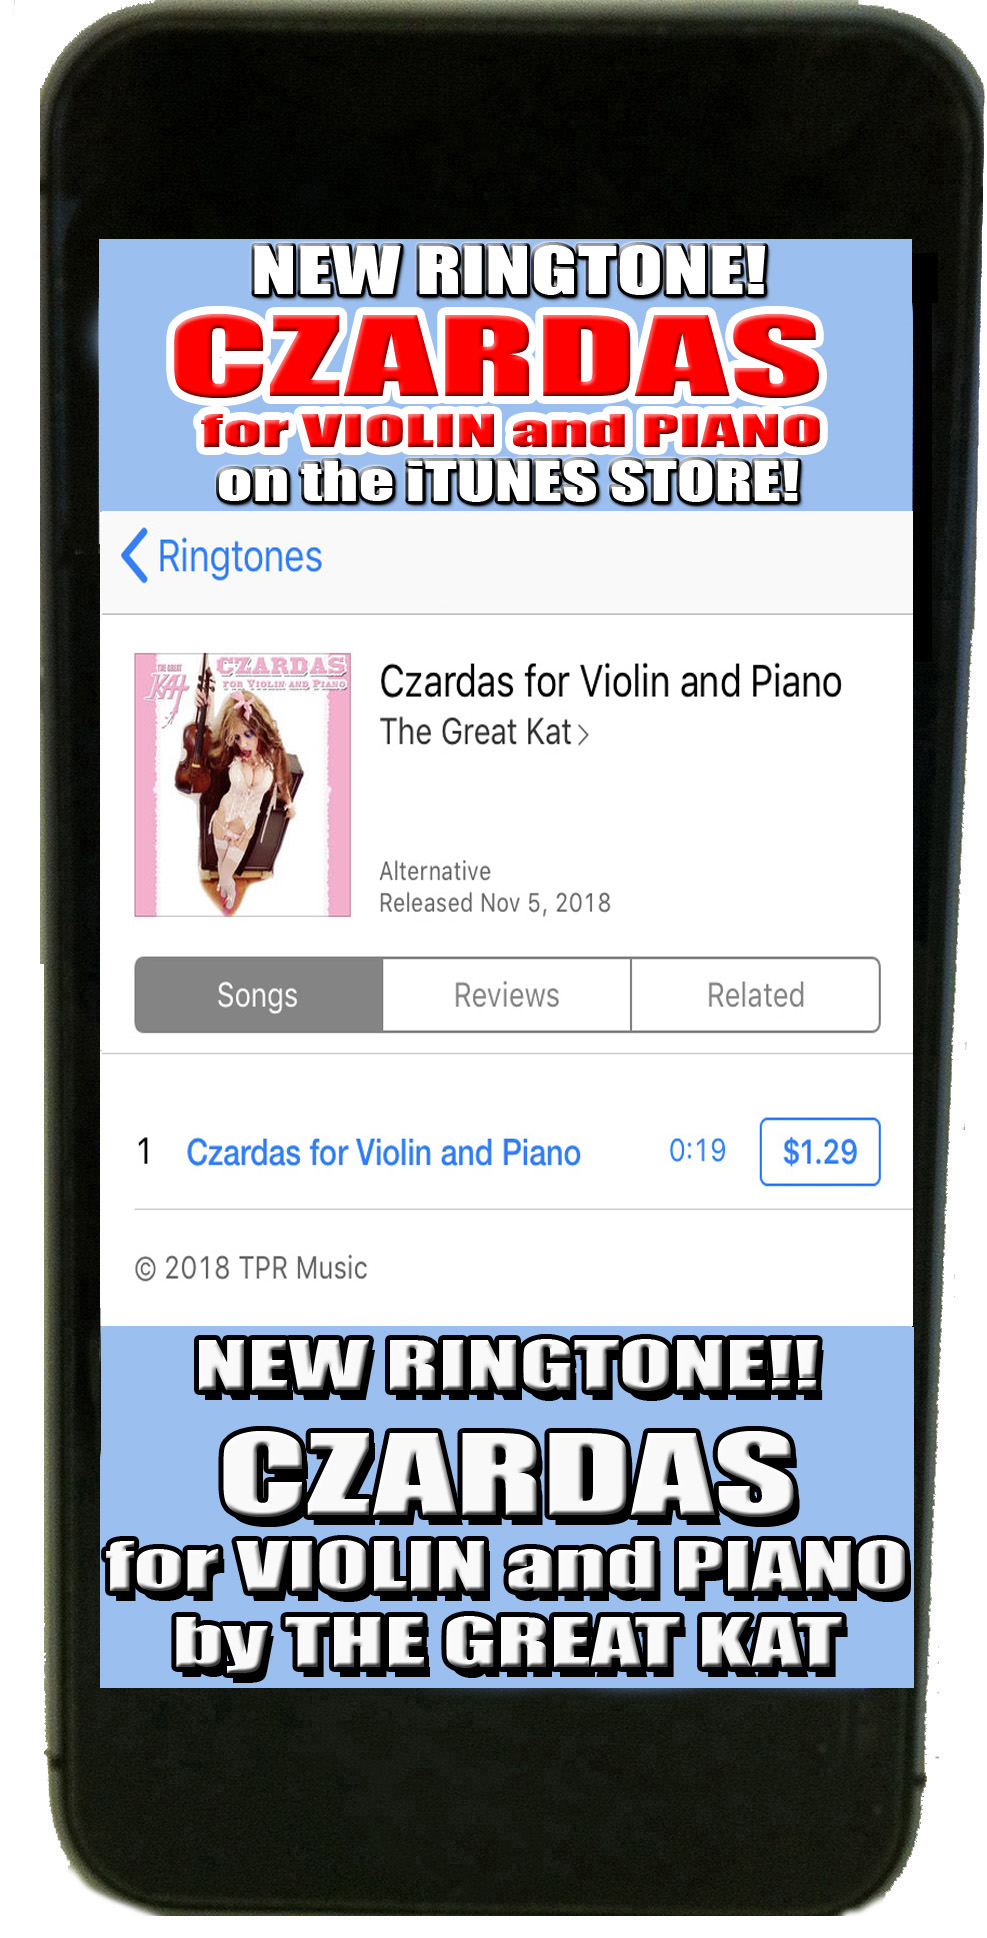 RINGTONE! THE GREAT KAT'S BRINDISI WALTZ FOR VIOLIN AND PIANO (The